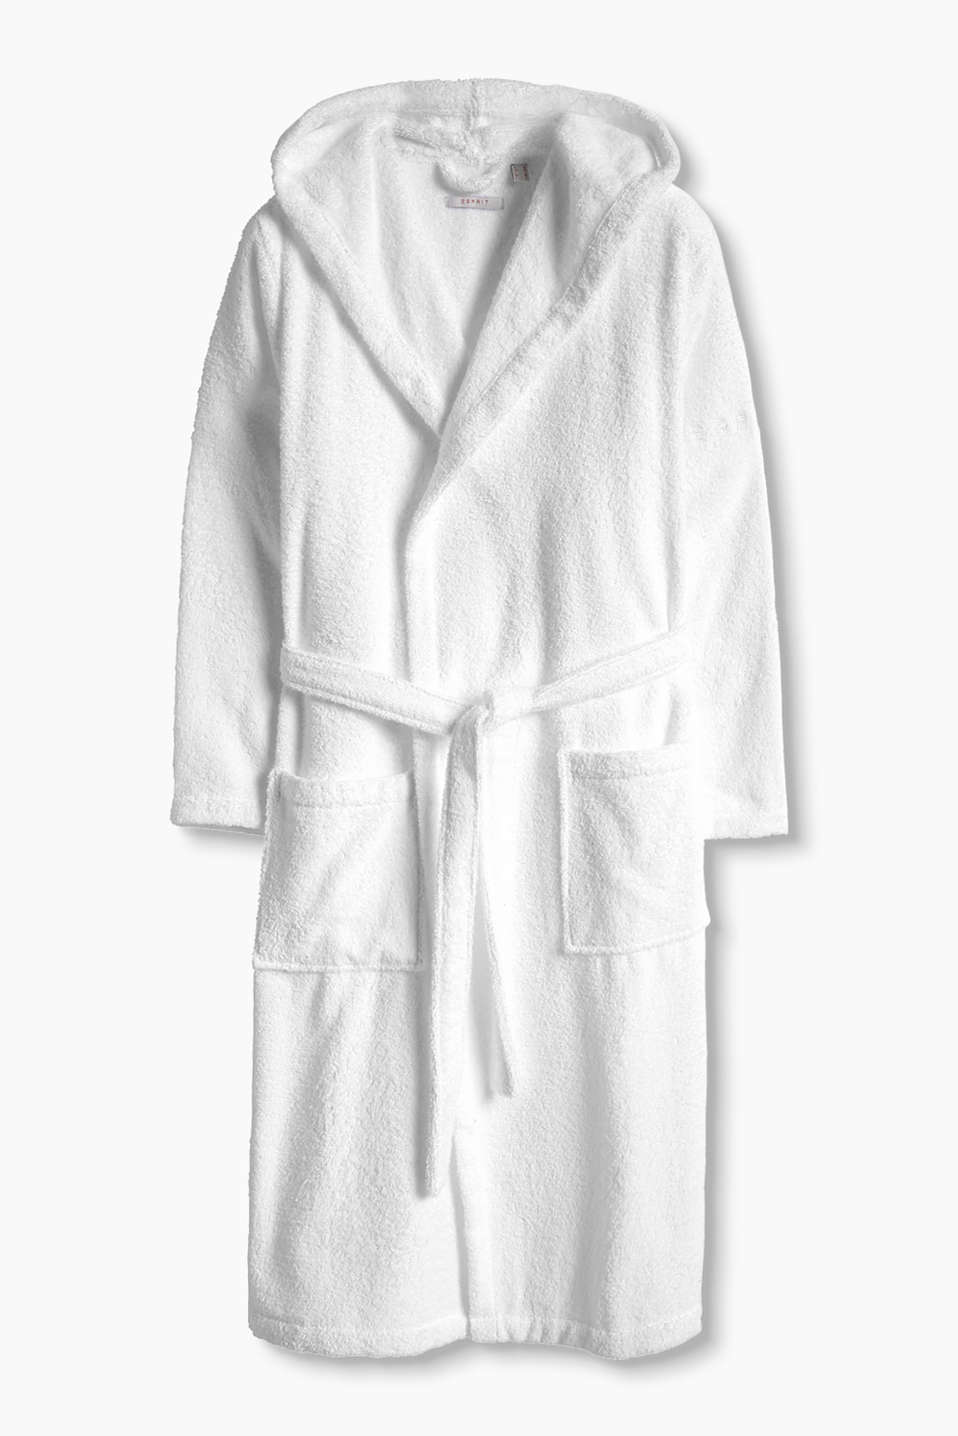 Esprit - Easy unisex bath robe in cotton